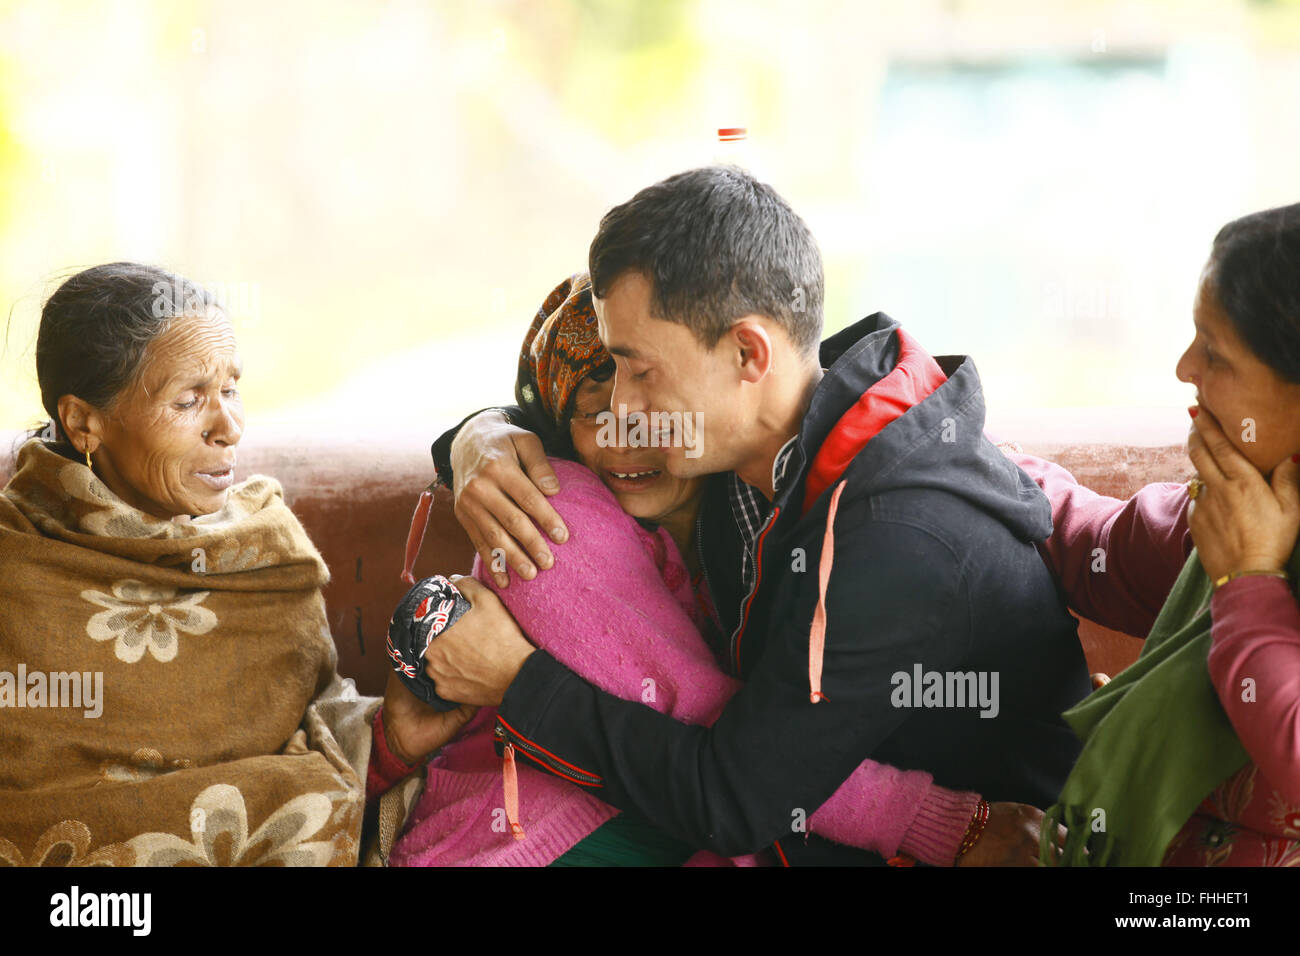 Pokhara. 25th Feb, 2016. Relatives of the victims of an aircraft crash cry at Pokhara Airport in Nepal, Feb. 25, - Stock Image